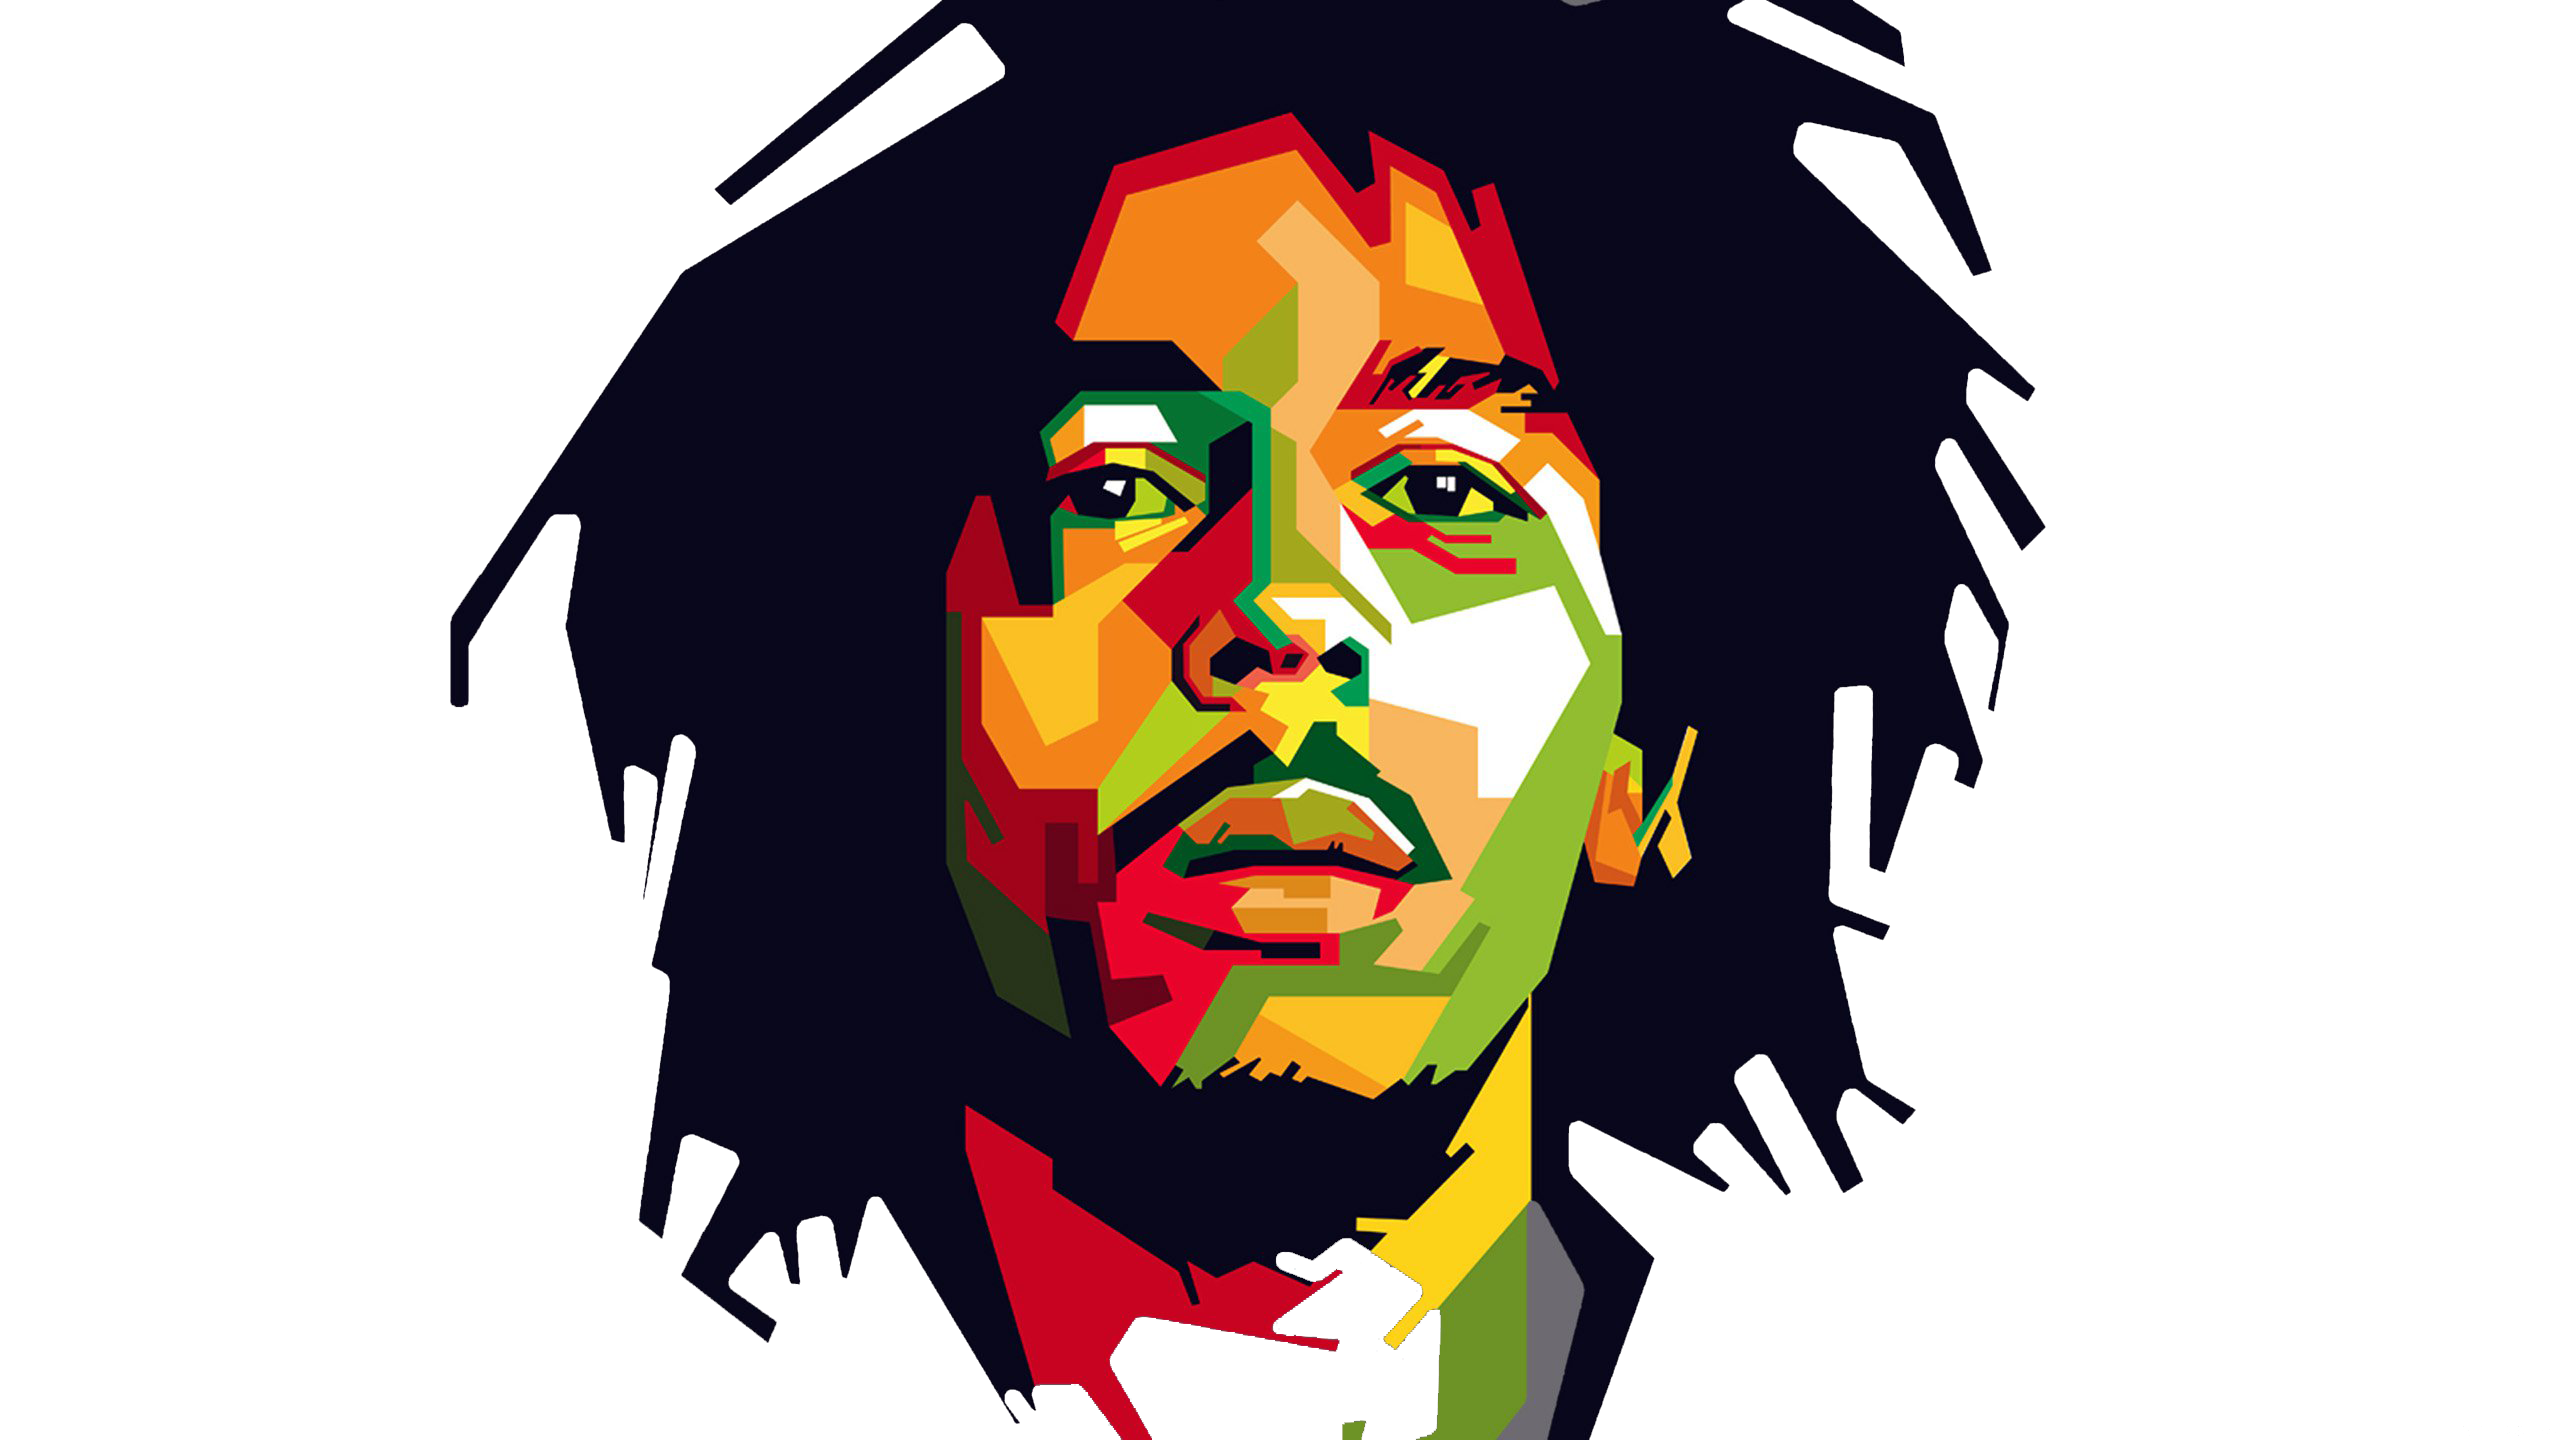 Bob marley clipart hd black and white download Bob Marley Png , (+) Png Group - romolagarai.org< black and white download